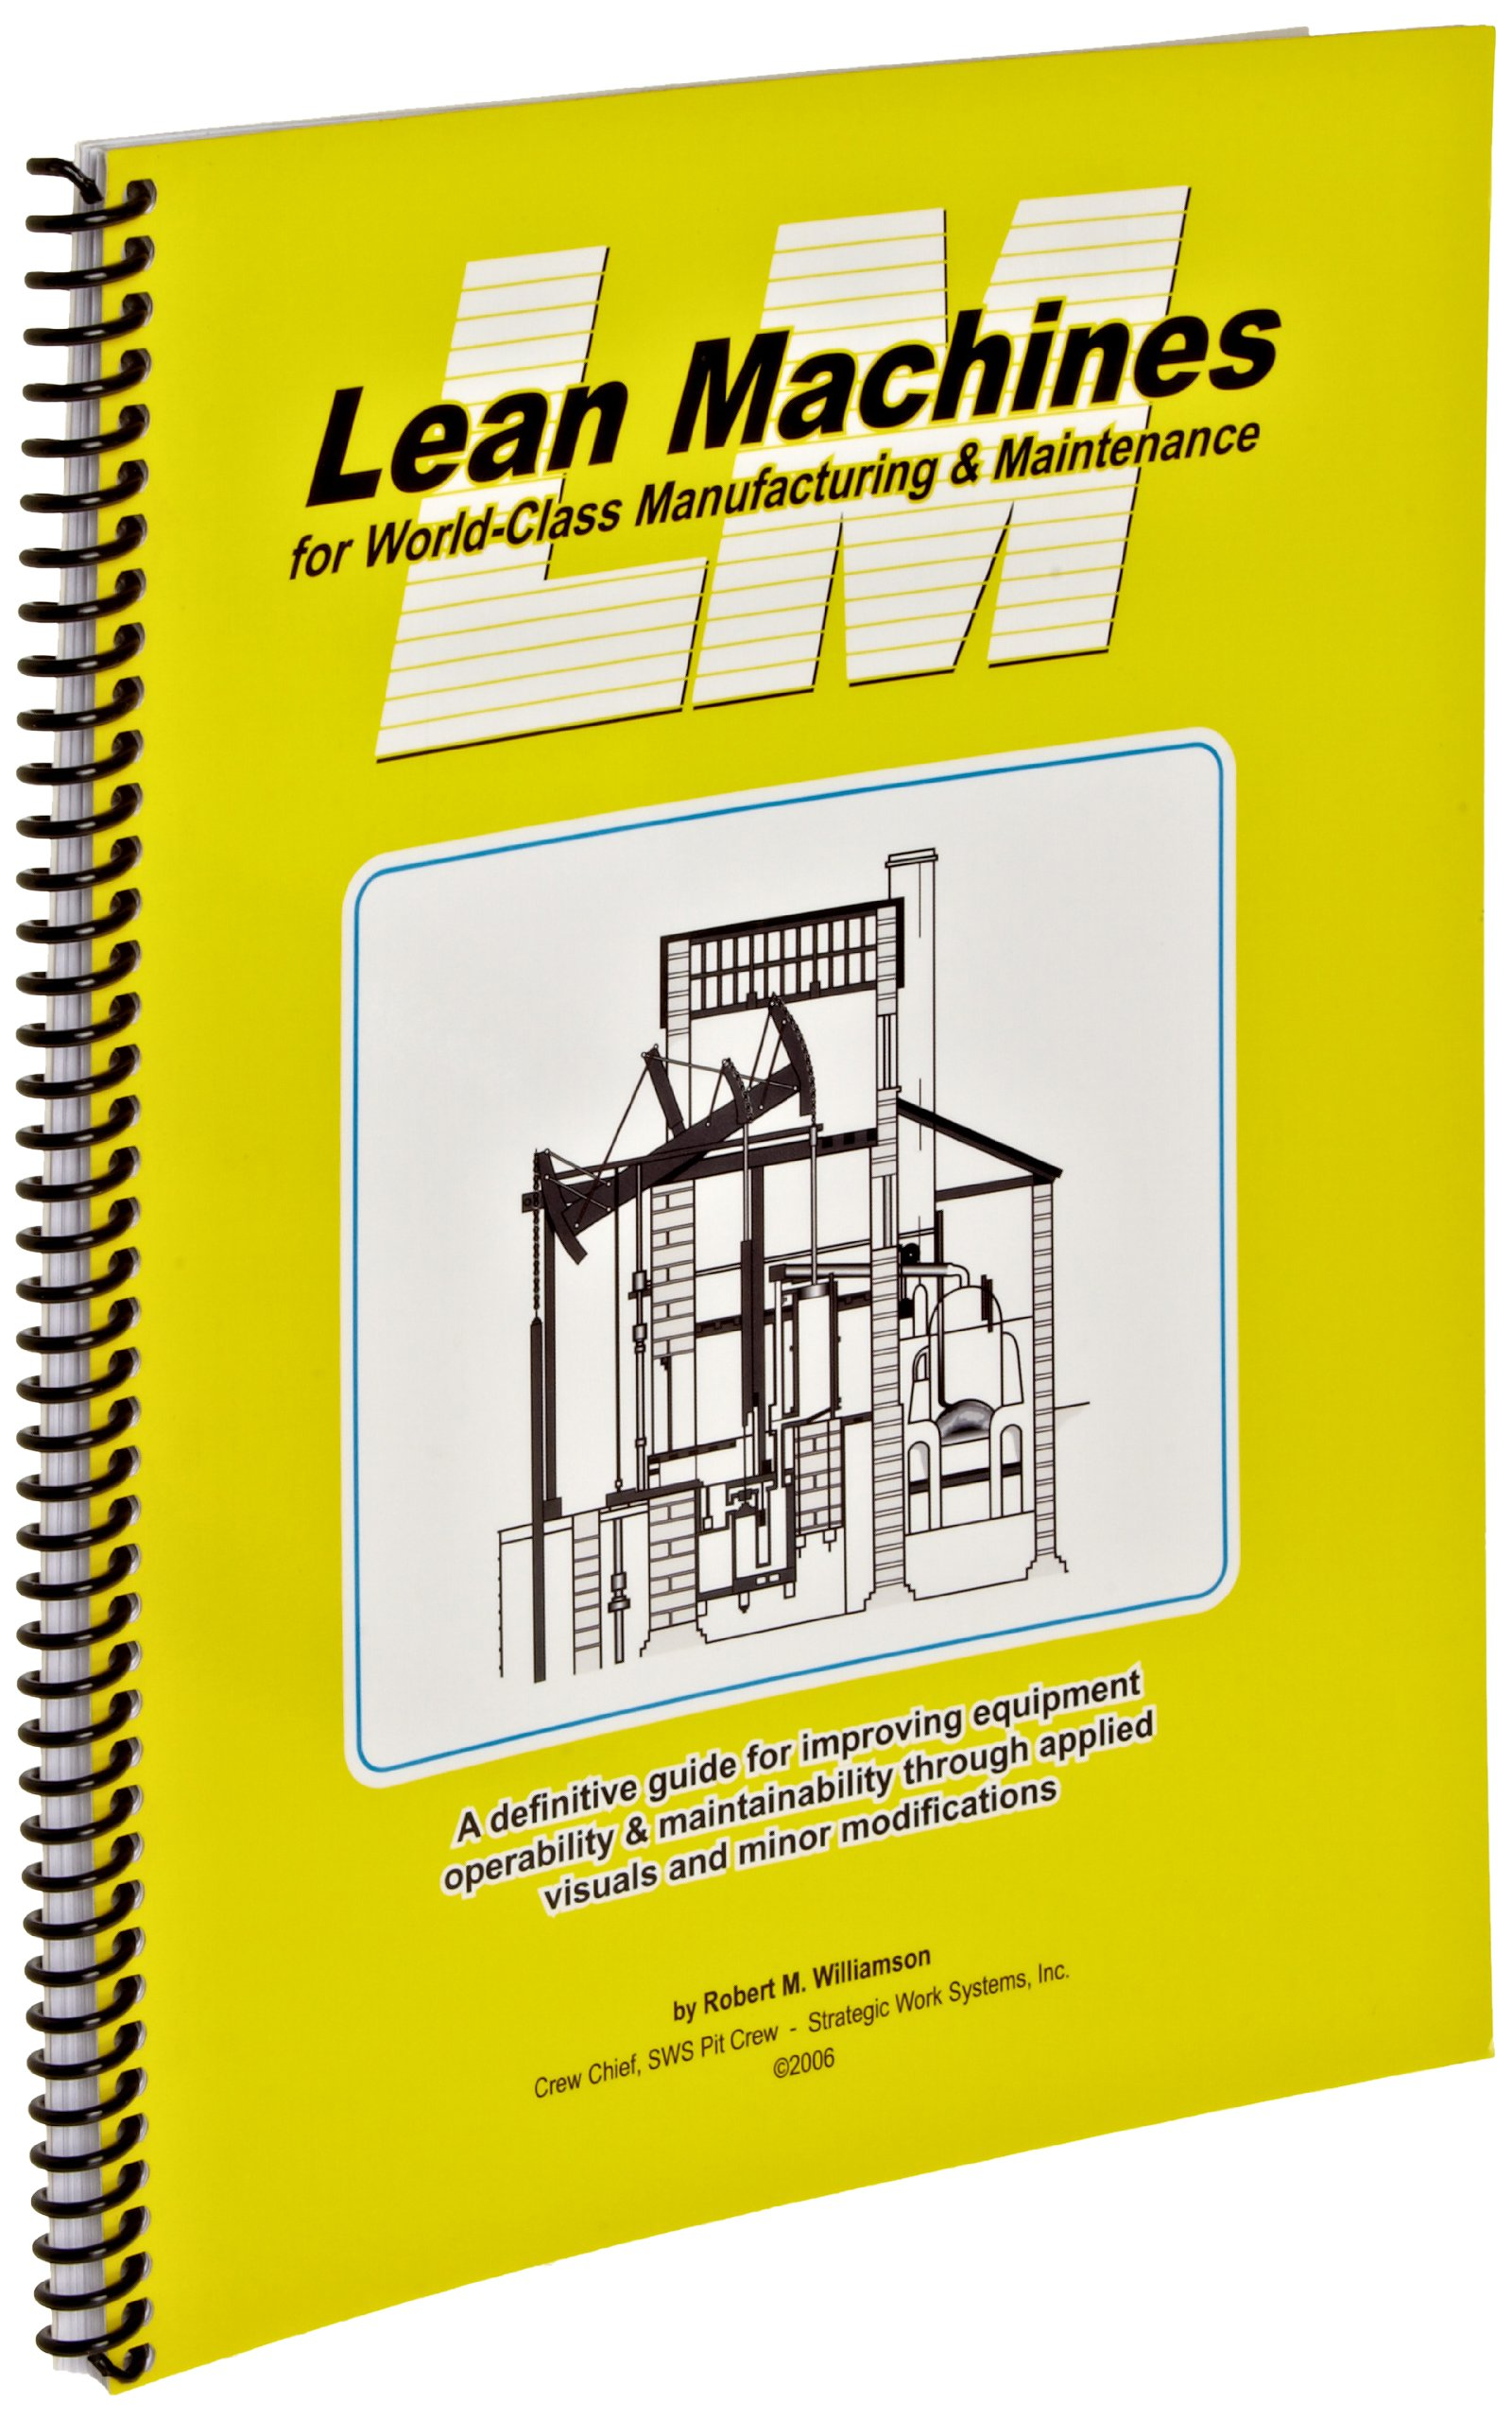 Brady 113242 Lean Machines For World-Class Manufacturing And Maintenance Book